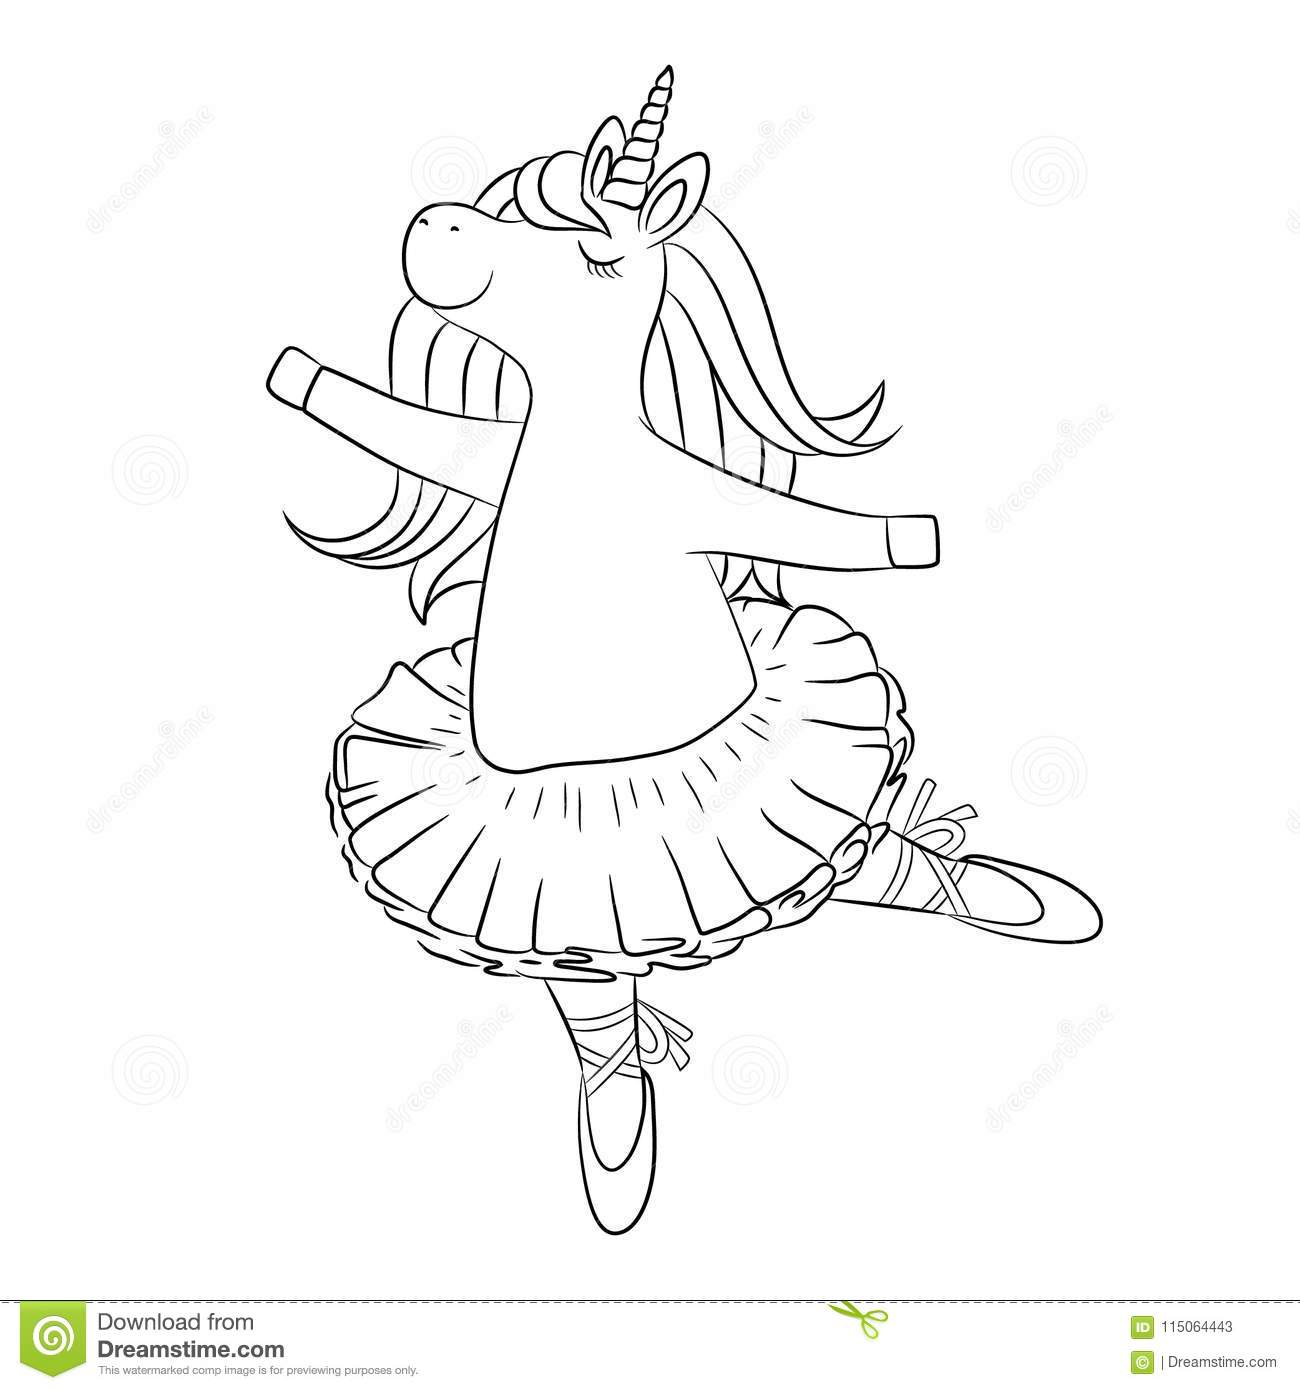 High Quality Download Cute Unicorn Ballerina Dancing, Outline Drawing. Stock  Illustration   Illustration Of Contour,